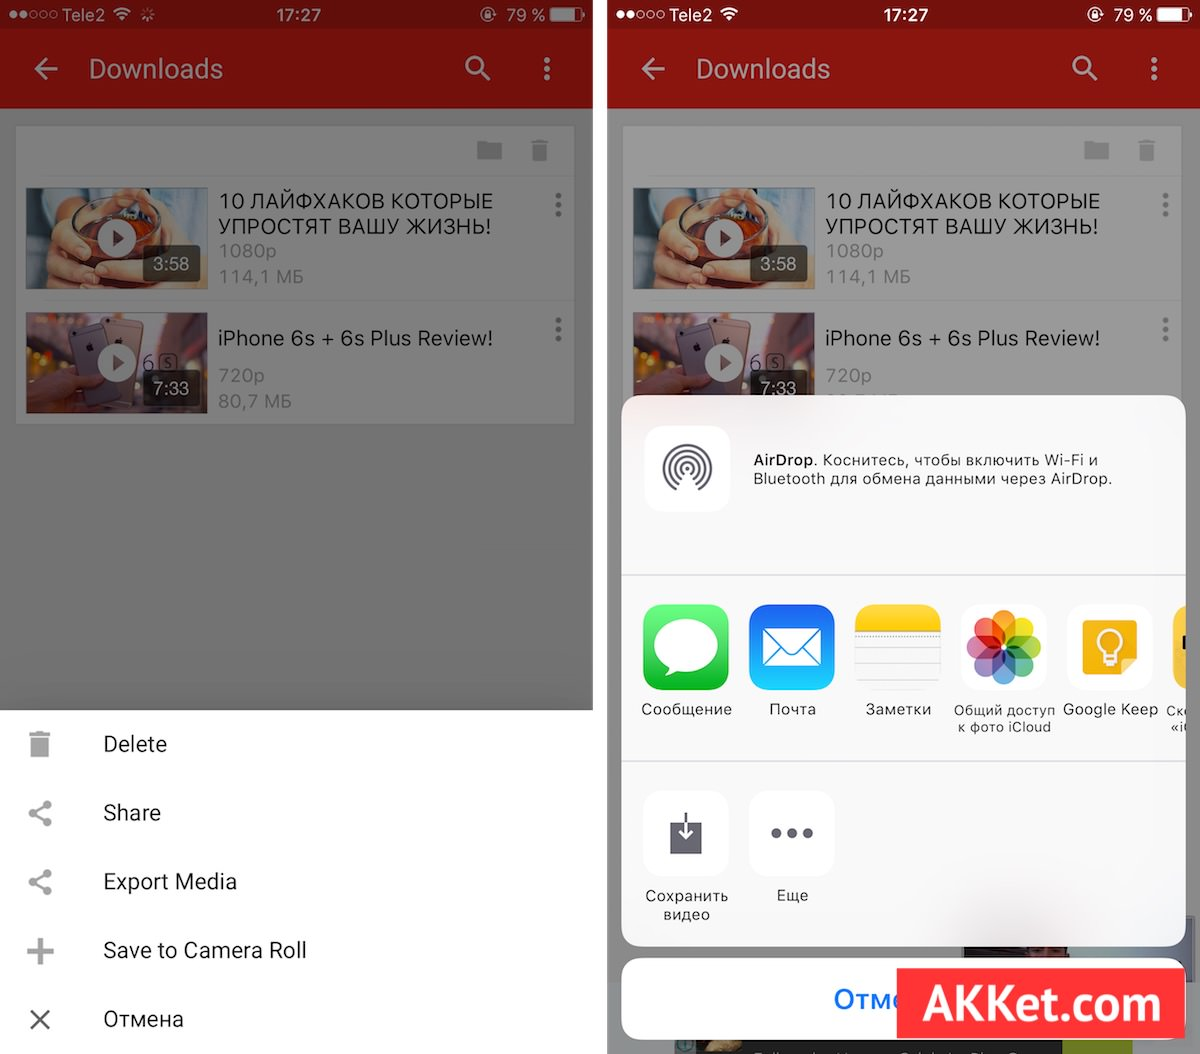 YouTube Download iOS 9 Cydia Tweak 1